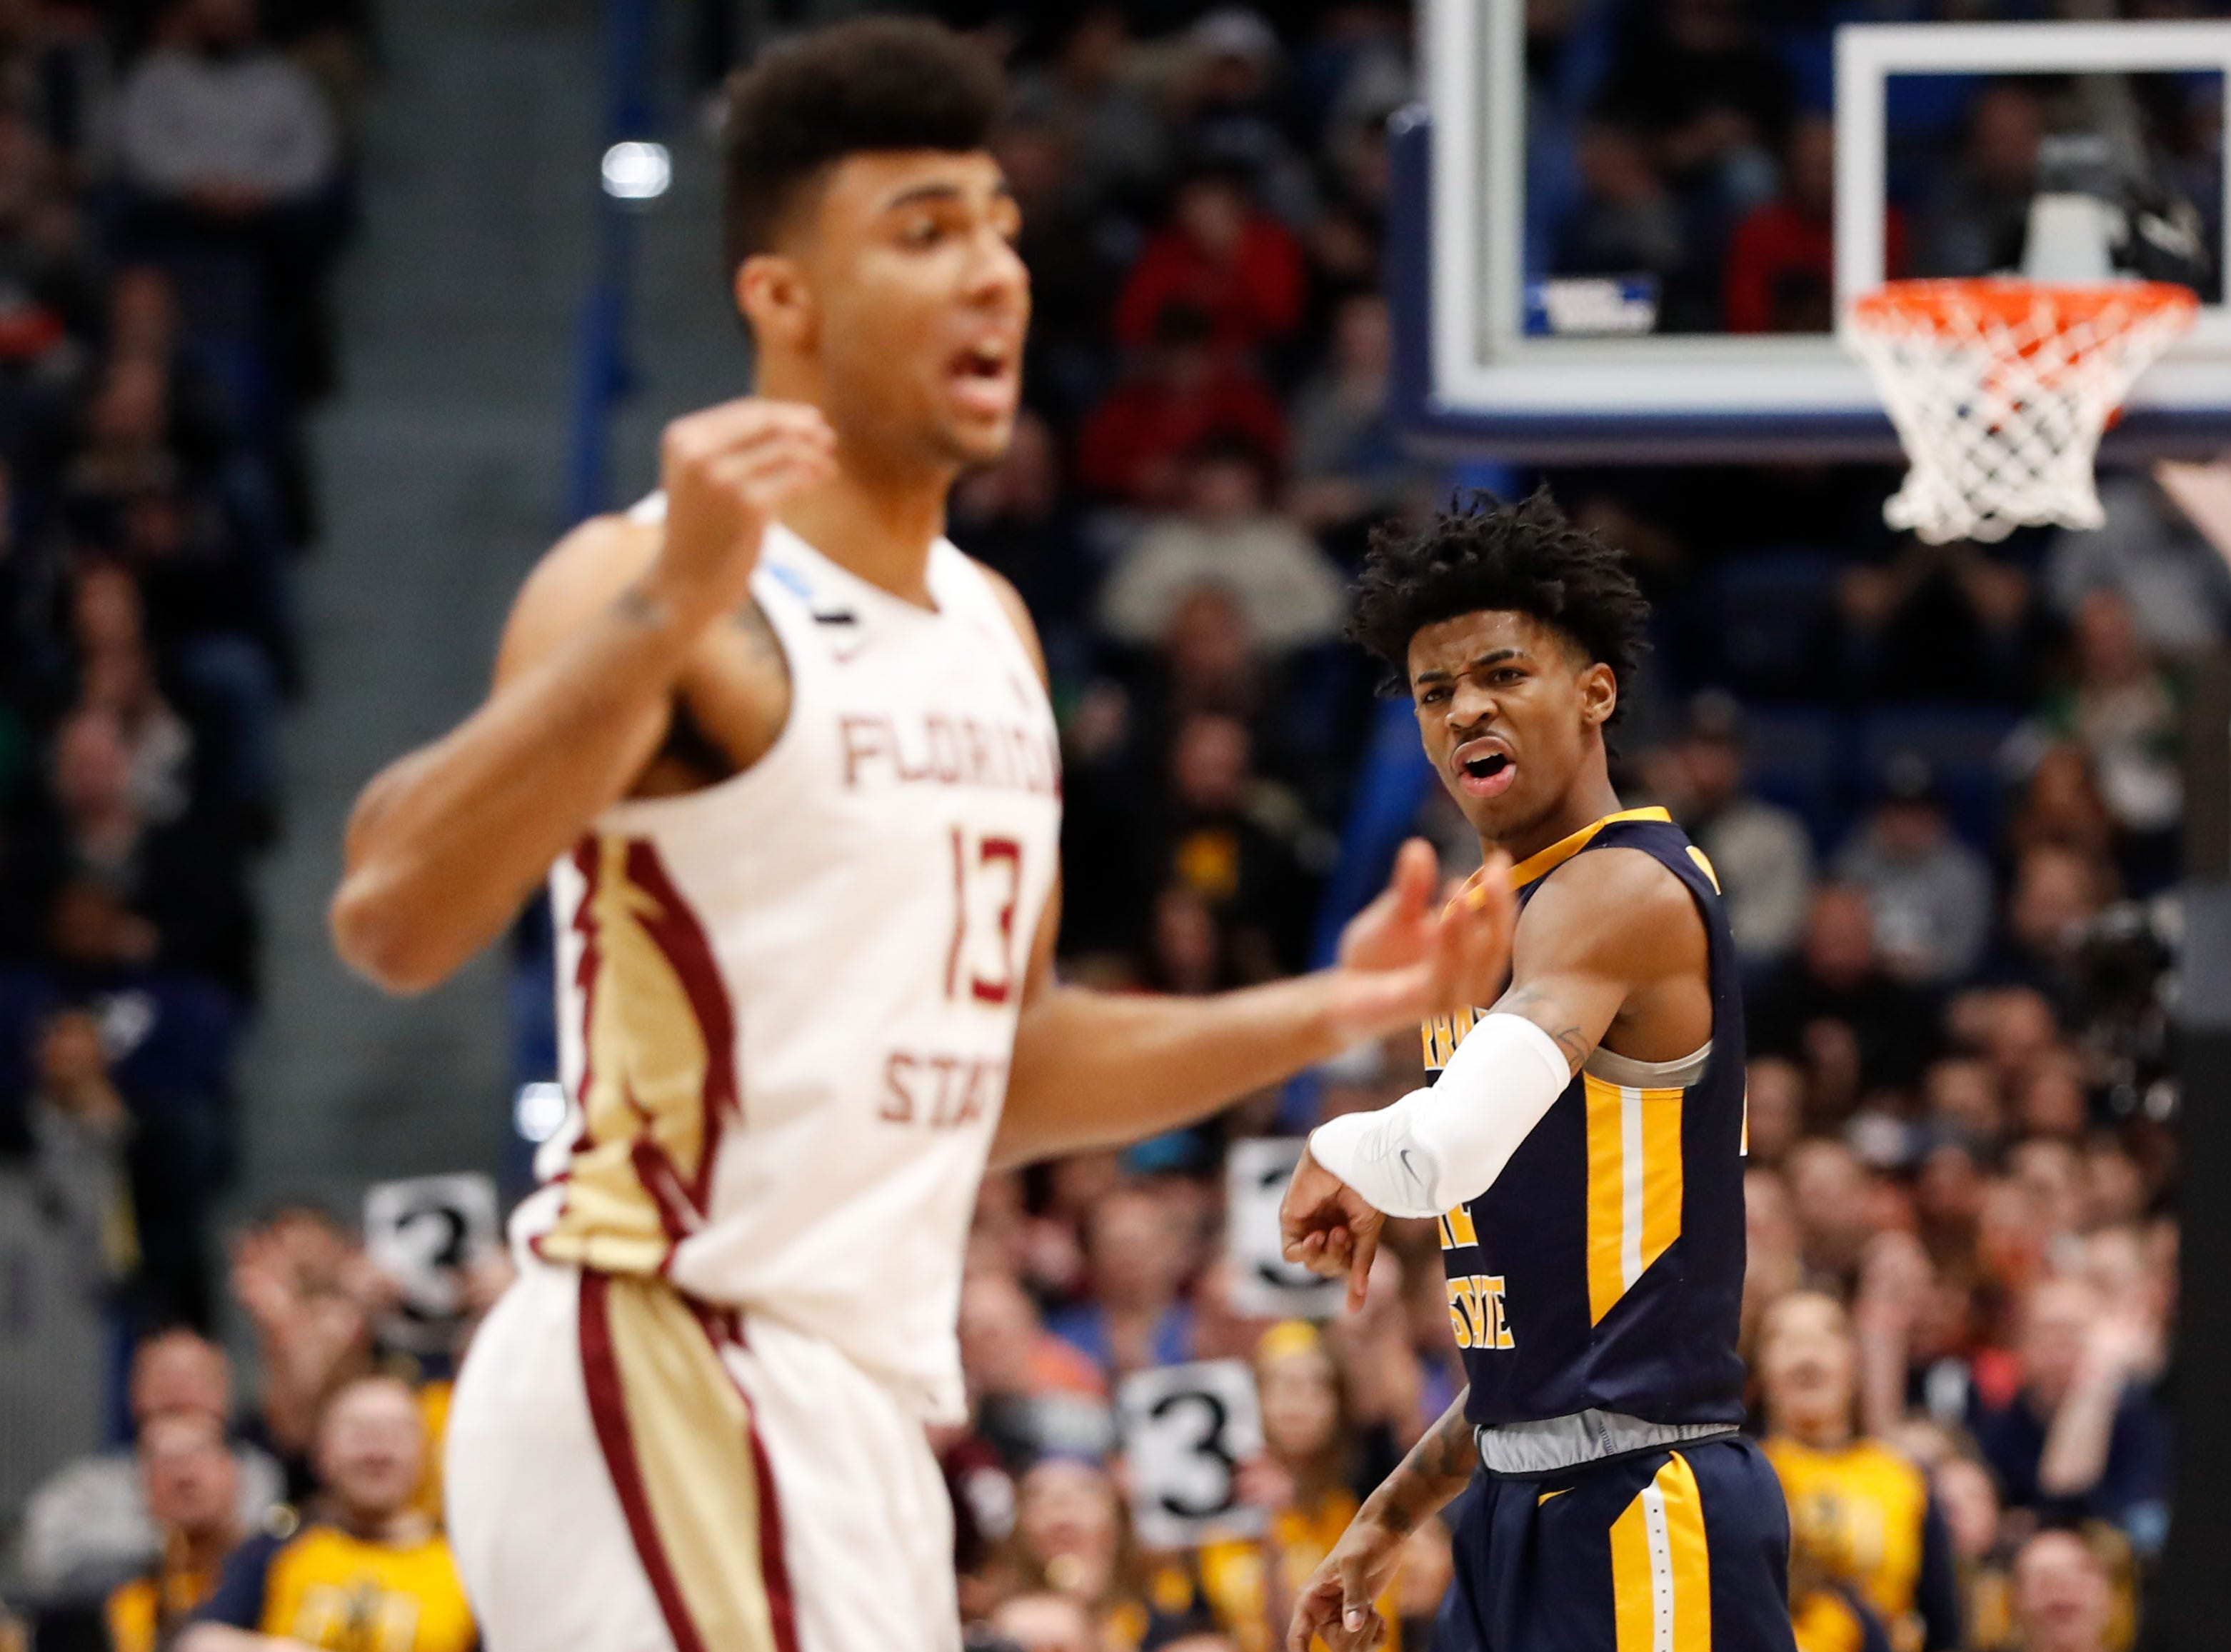 Mar 23, 2019; Hartford, CT, USA; Murray State Racers guard Ja Morant (12) reacts during the first half of a game against the Florida State Seminoles in the second round of the 2019 NCAA Tournament at XL Center. Mandatory Credit: David Butler II-USA TODAY Sports